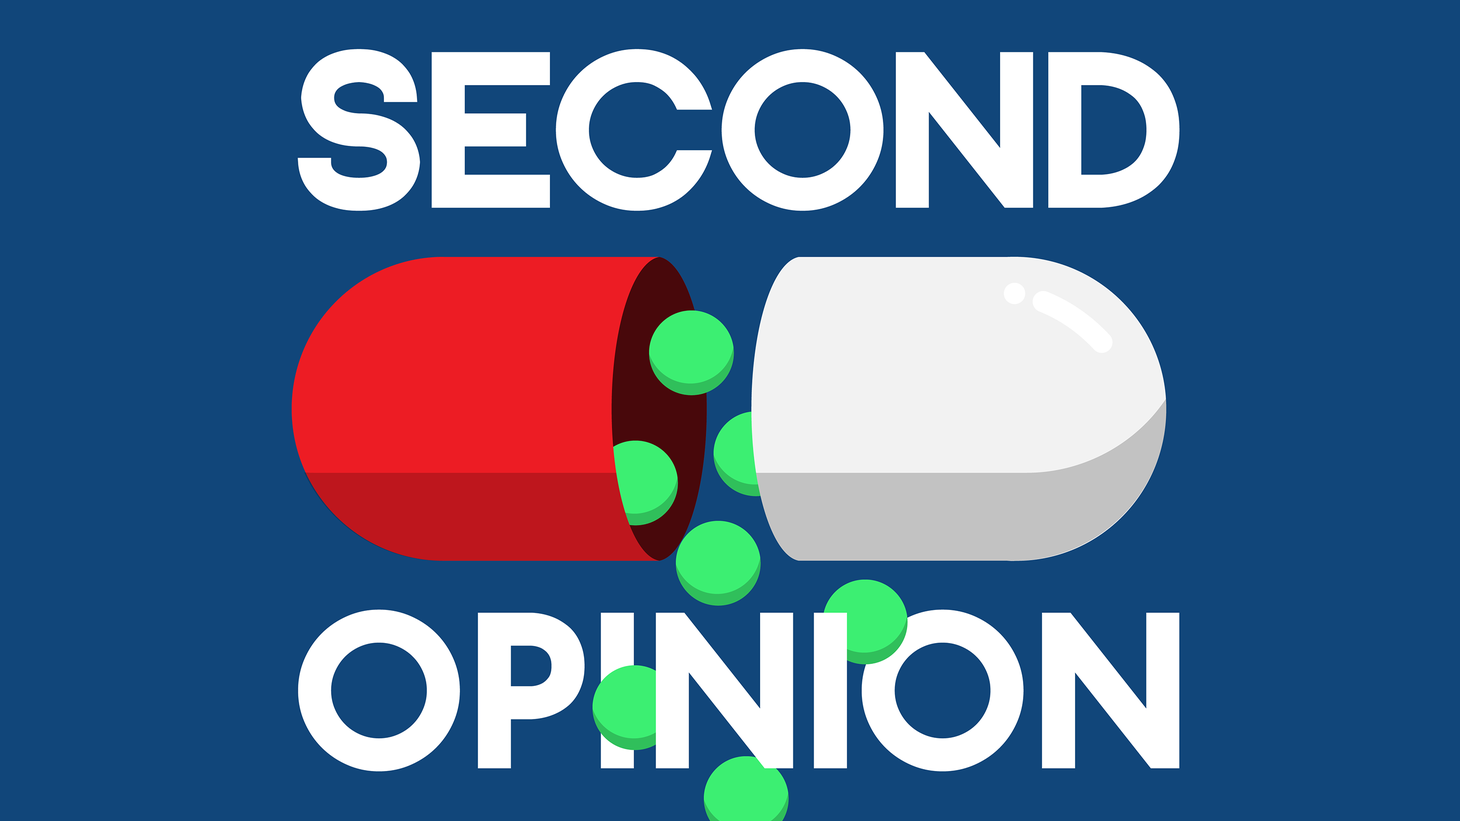 Why would anyone care about what drugs I prescribe?